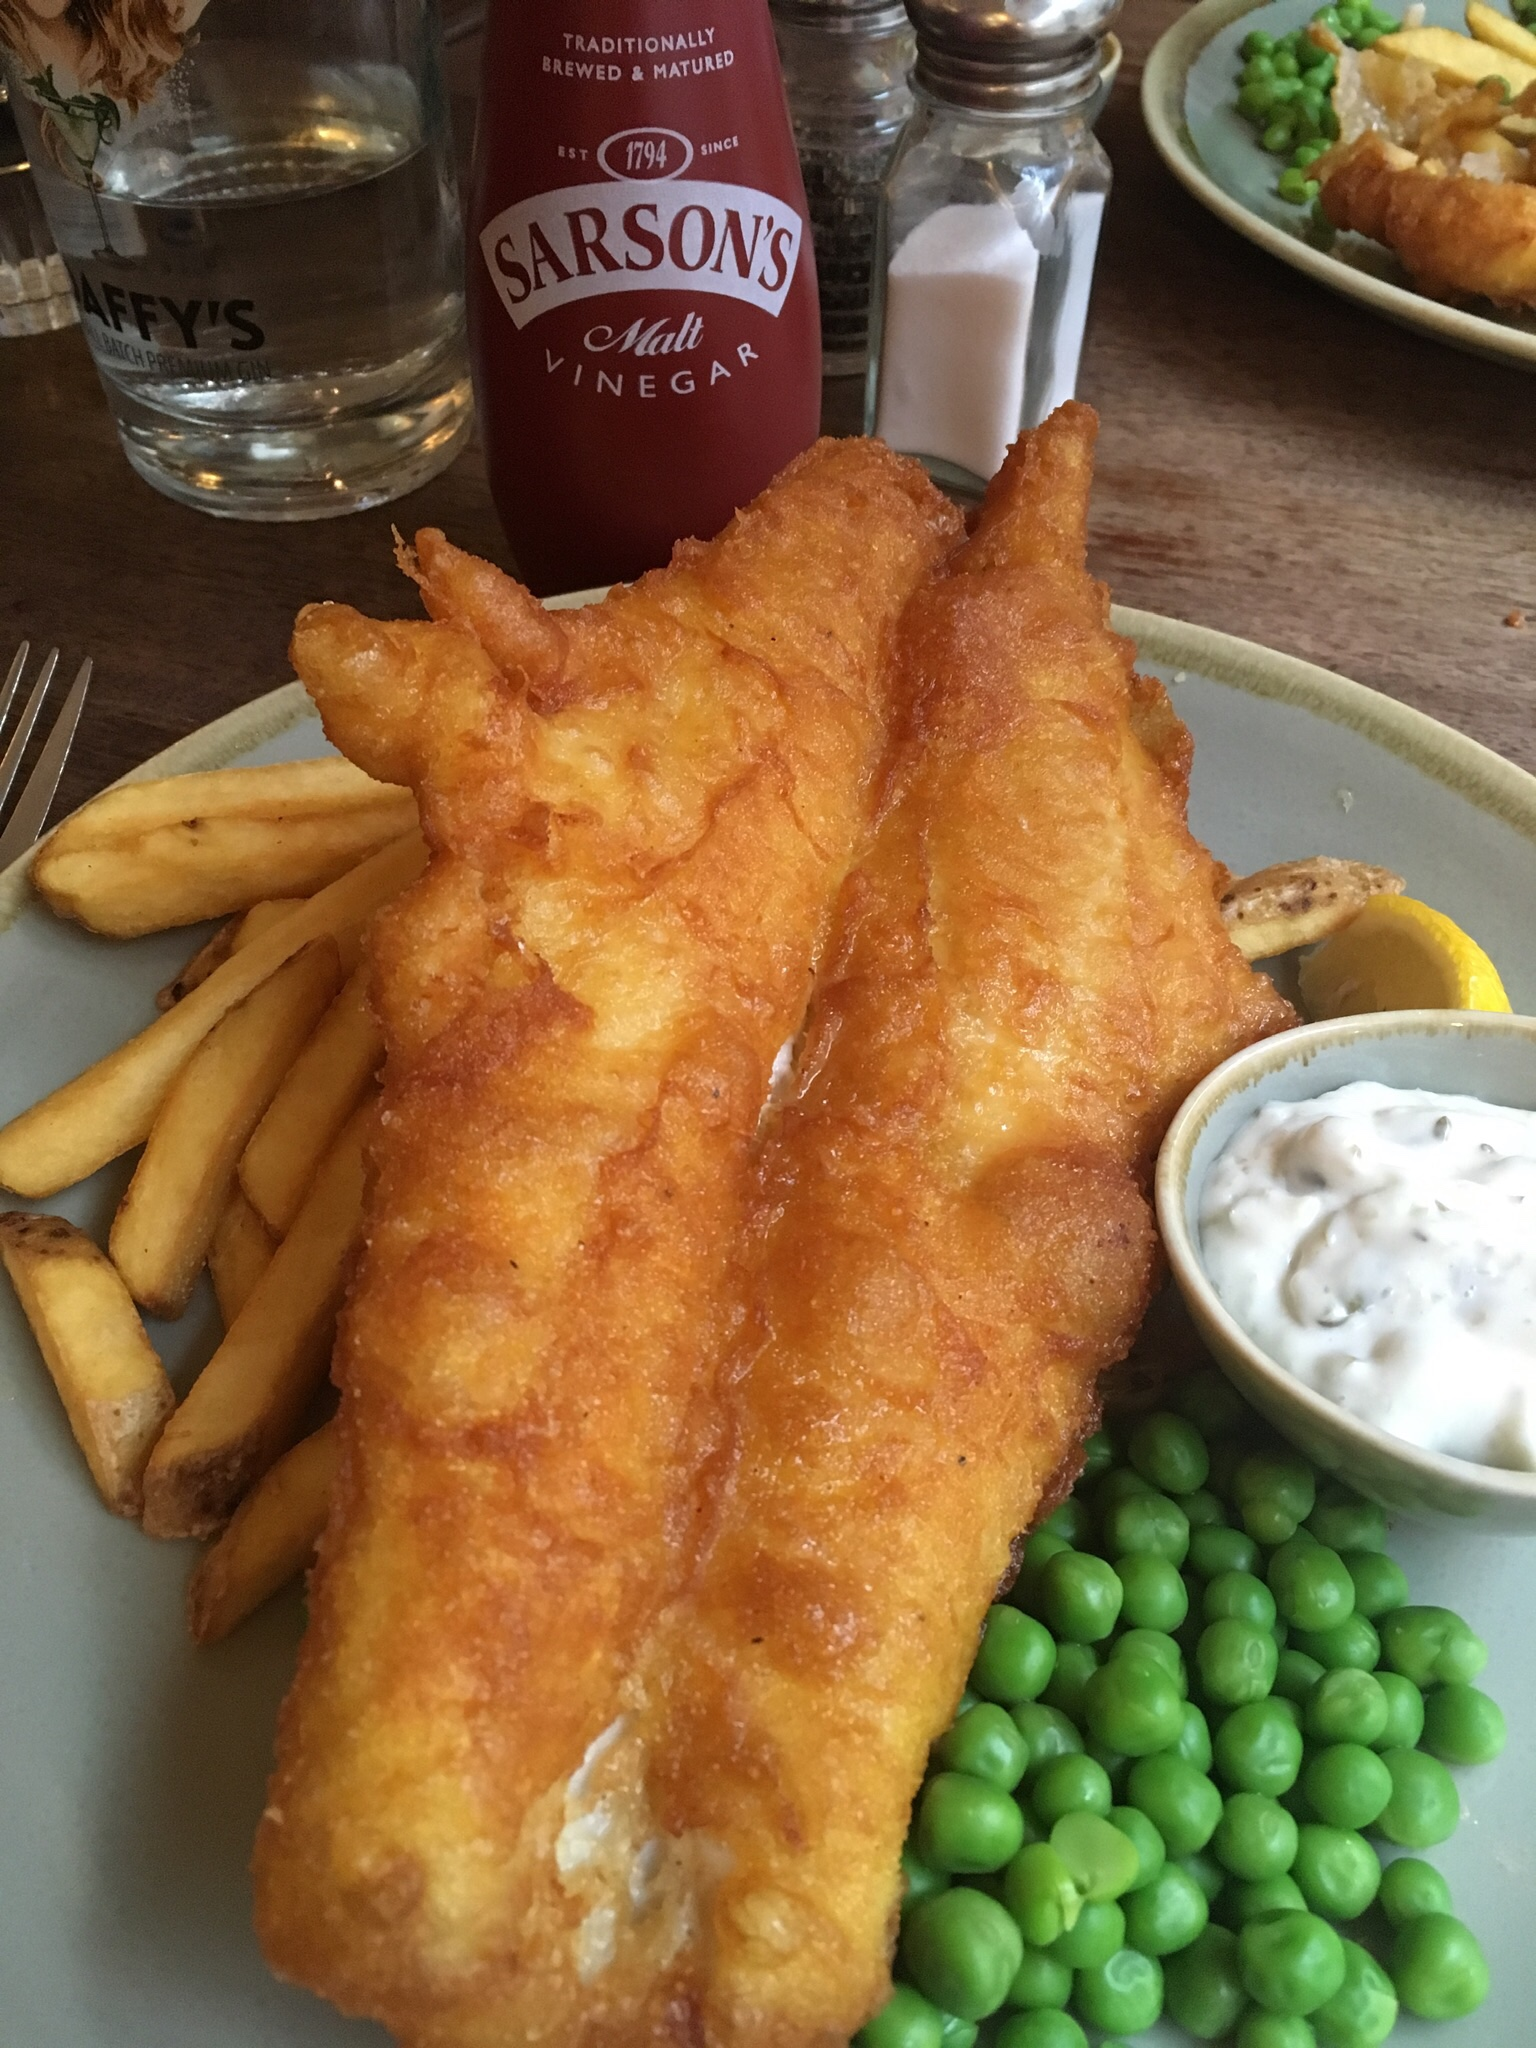 Fish and chips, classic Scottish pub food